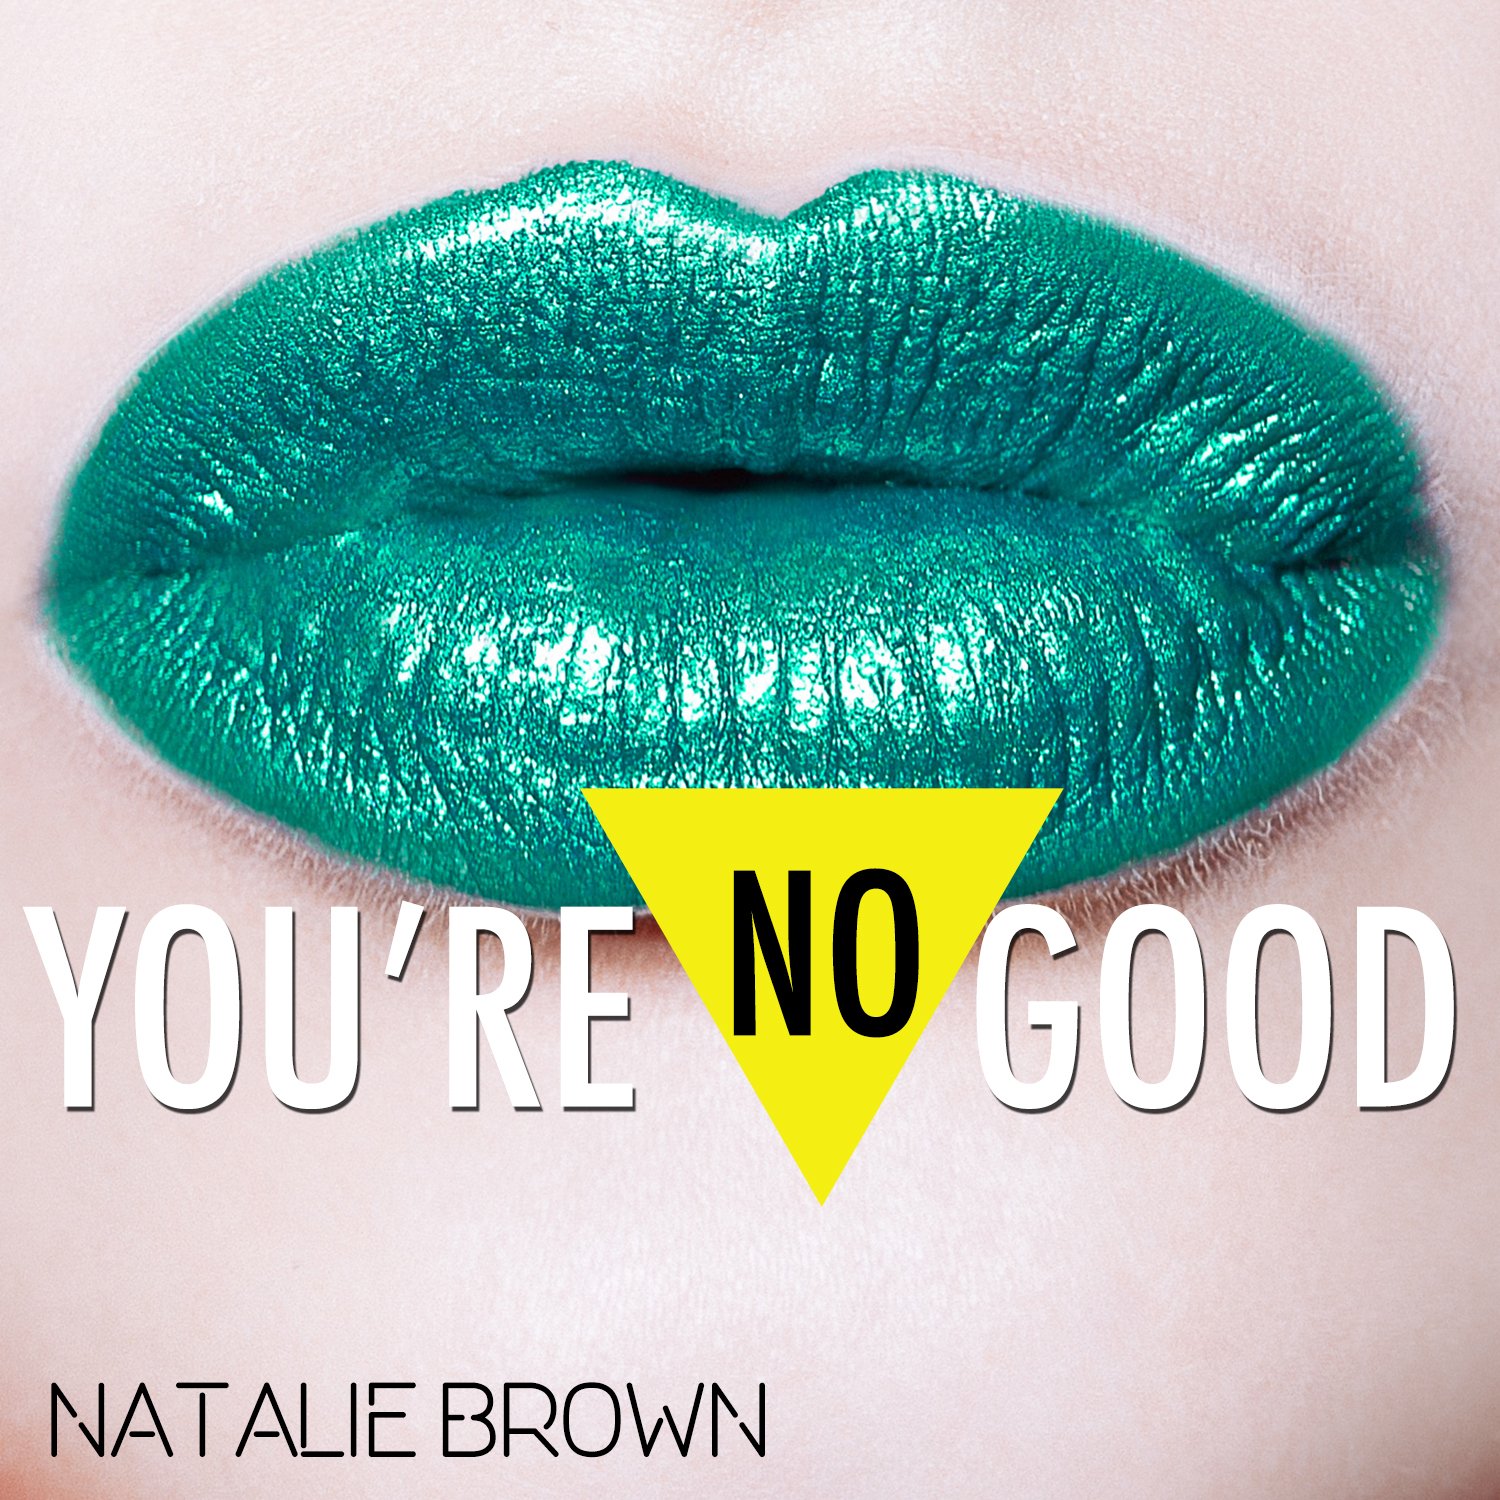 You're No Good | Natalie Brown | Single | 2017